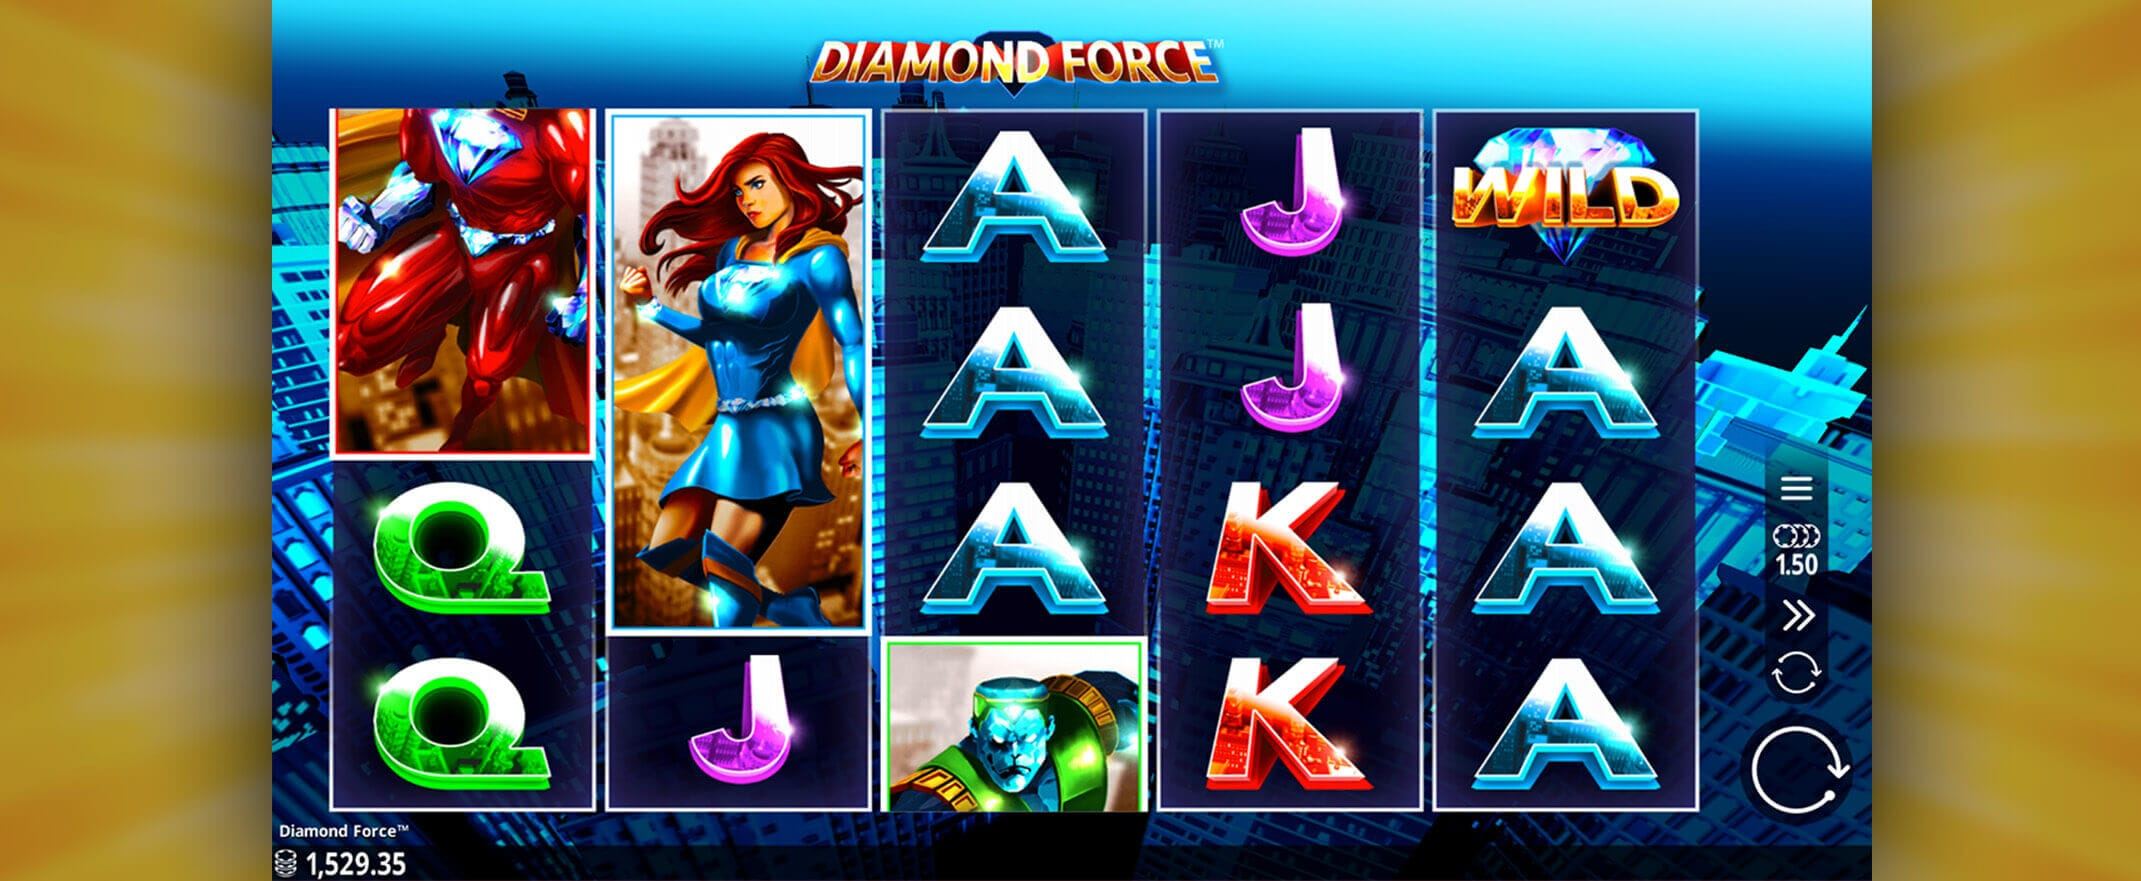 Diamond Force Gameplay